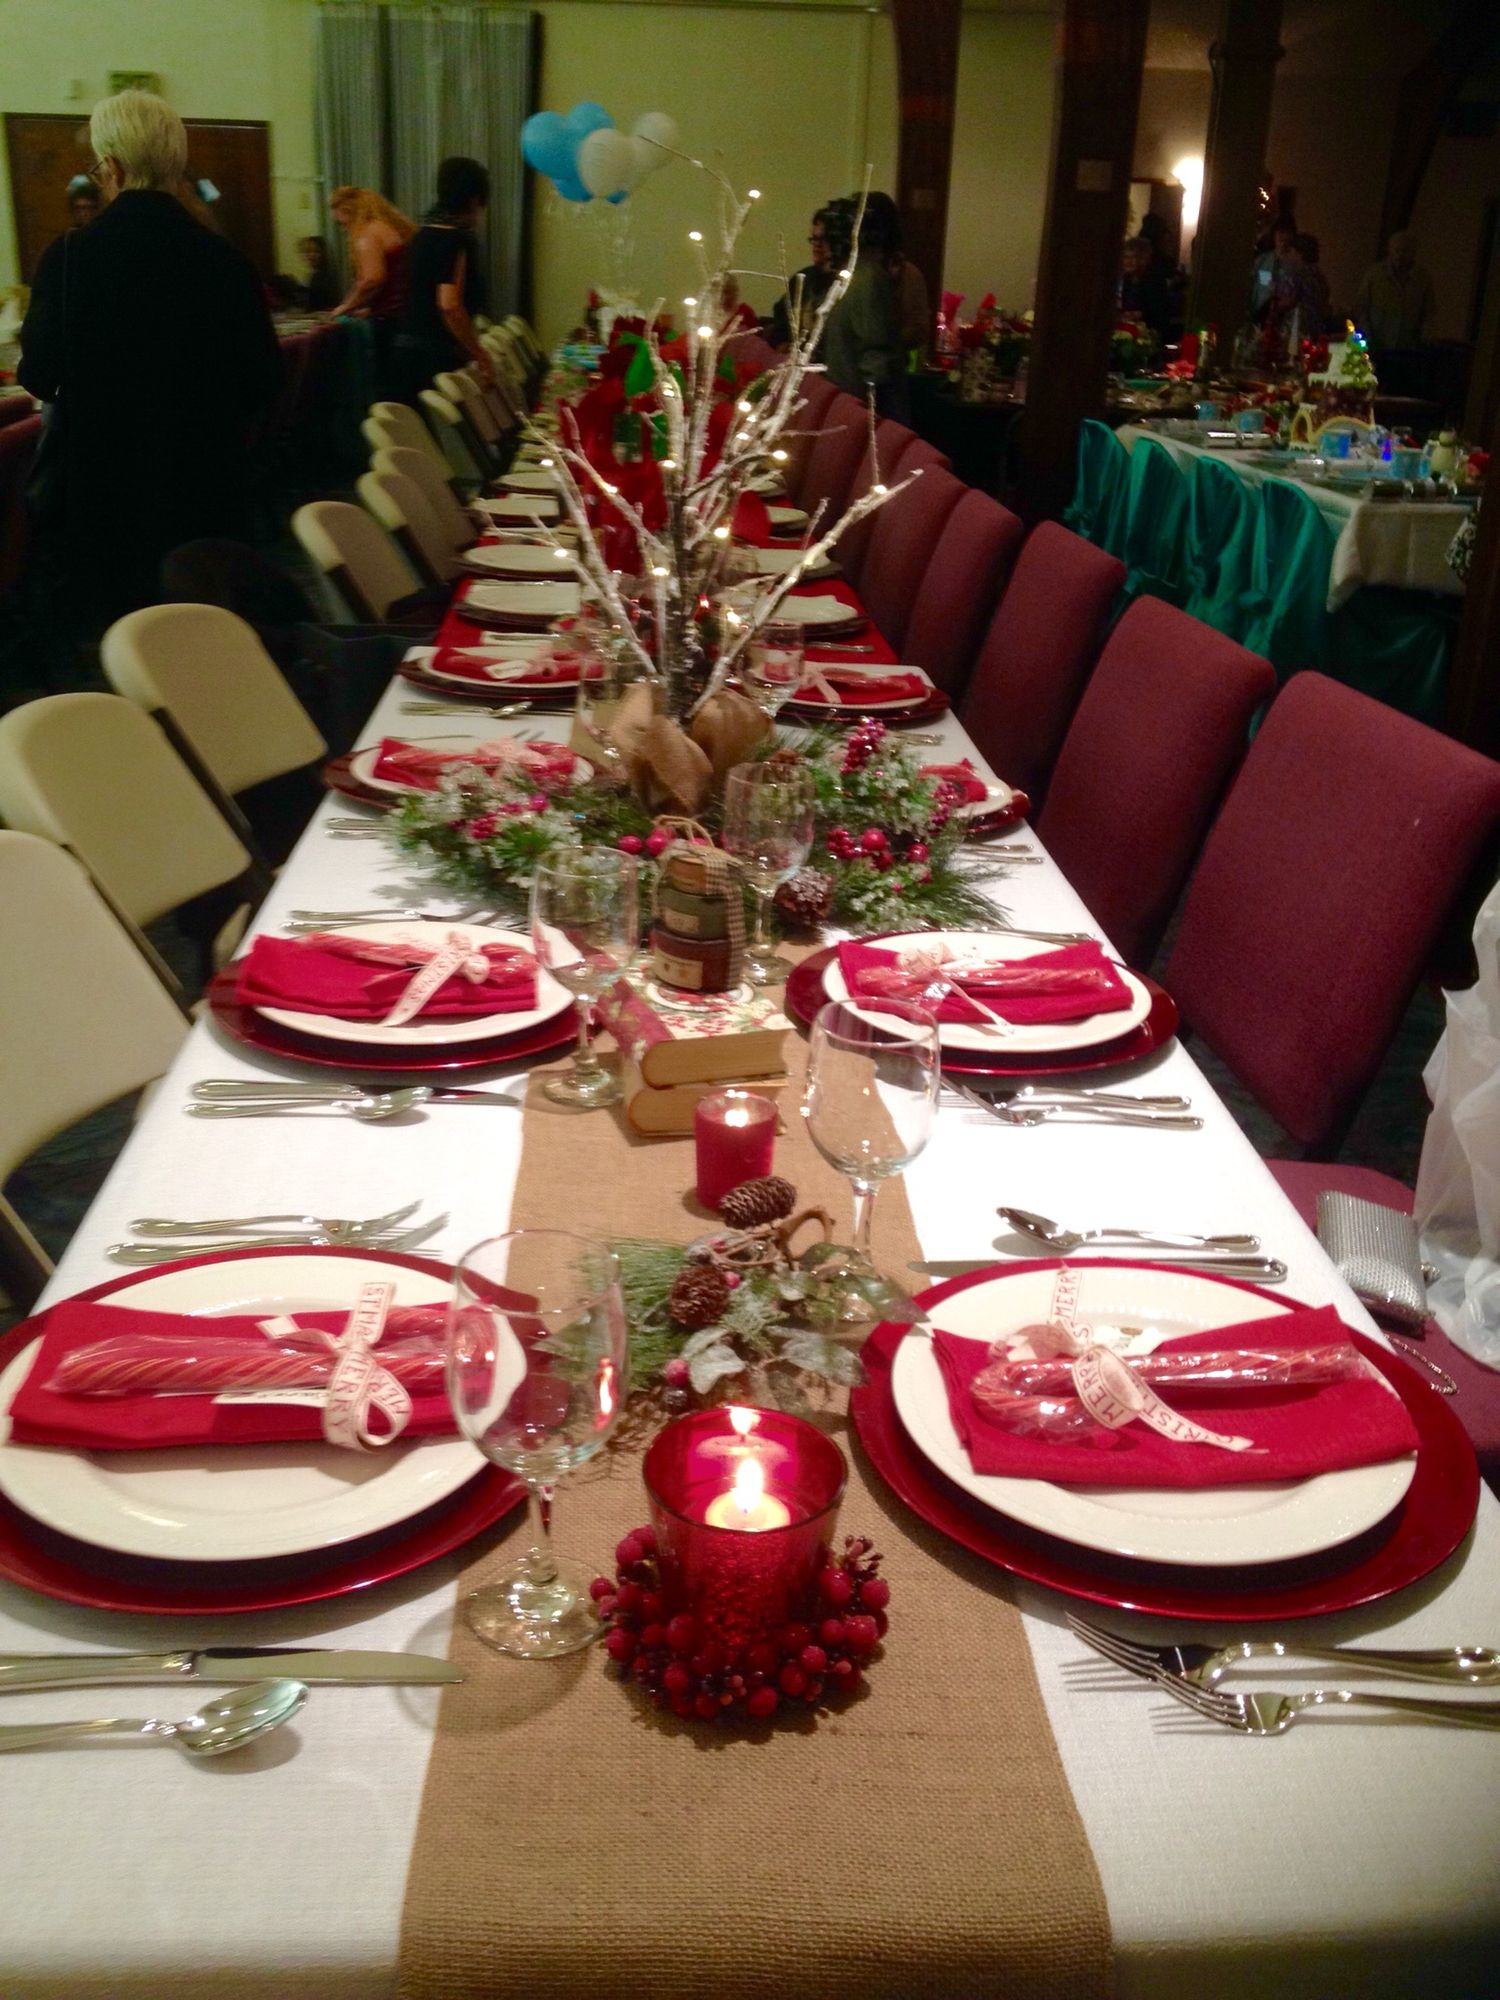 christmas banquet table decorations christmas pinterest christmas christmas decorations. Black Bedroom Furniture Sets. Home Design Ideas